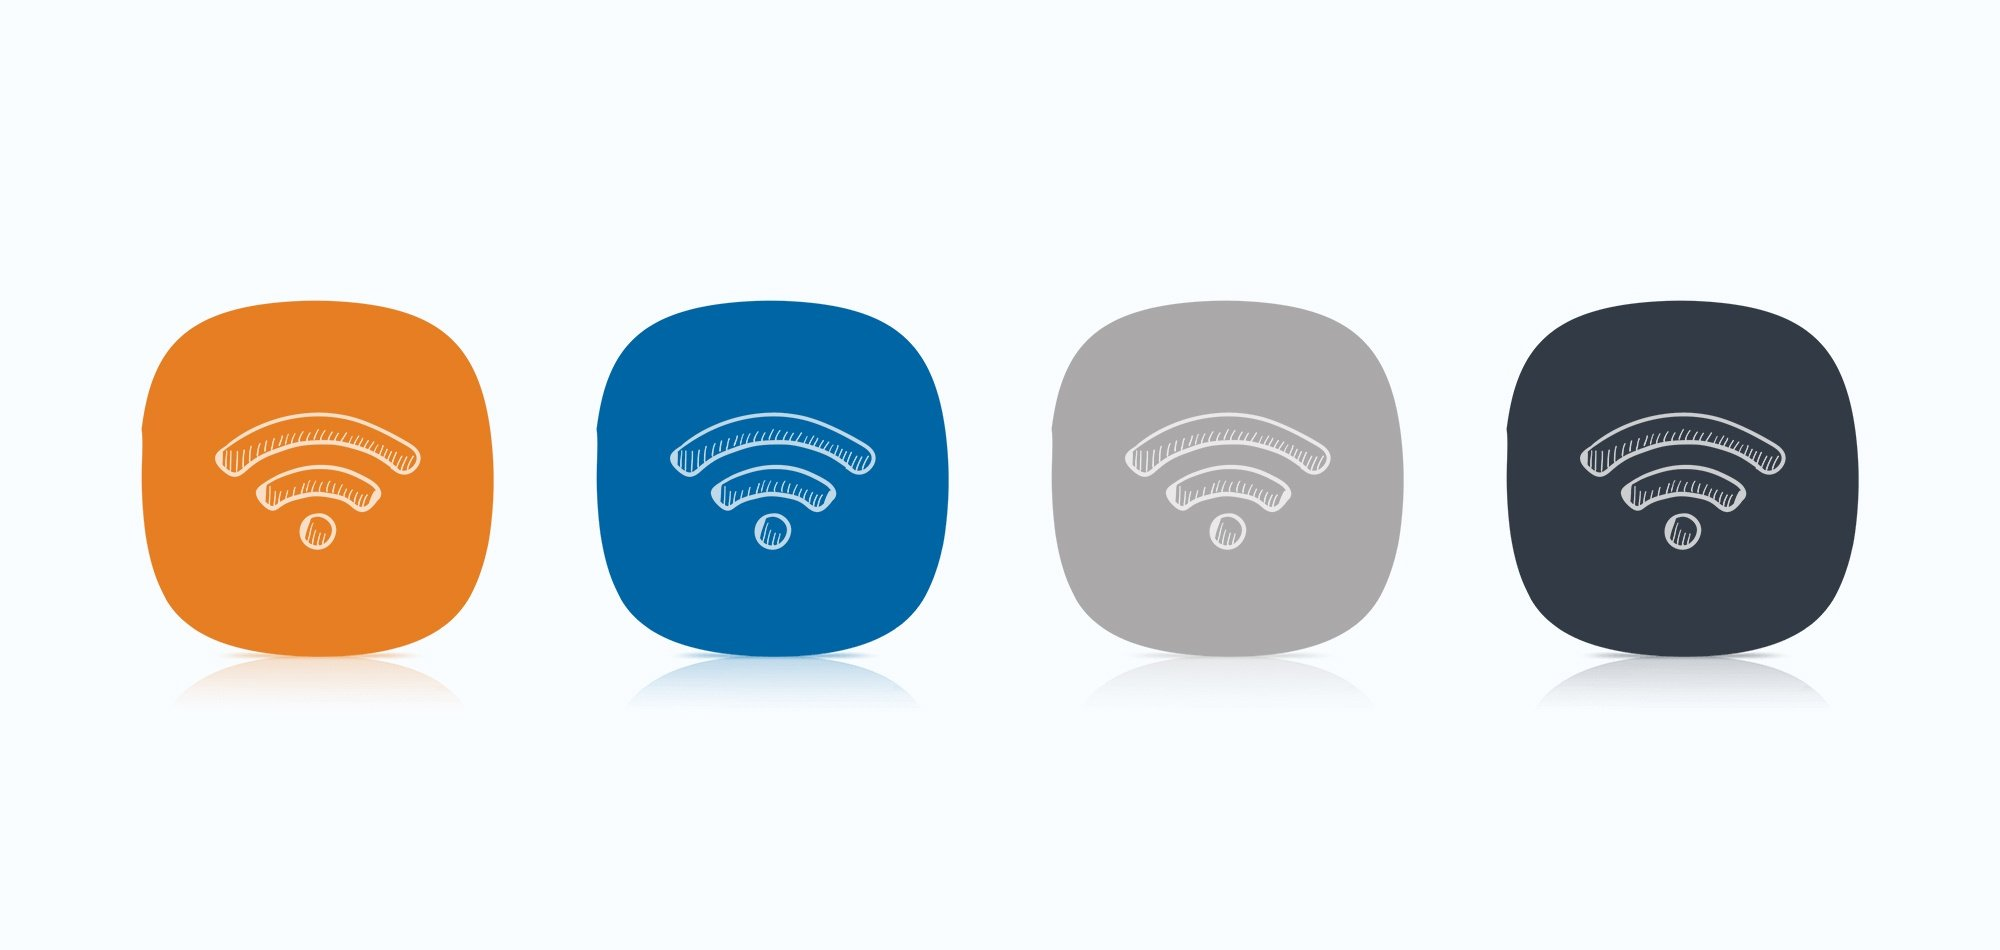 Wi-Fi Basics: What Type of Access Points Do I Need and How Many?